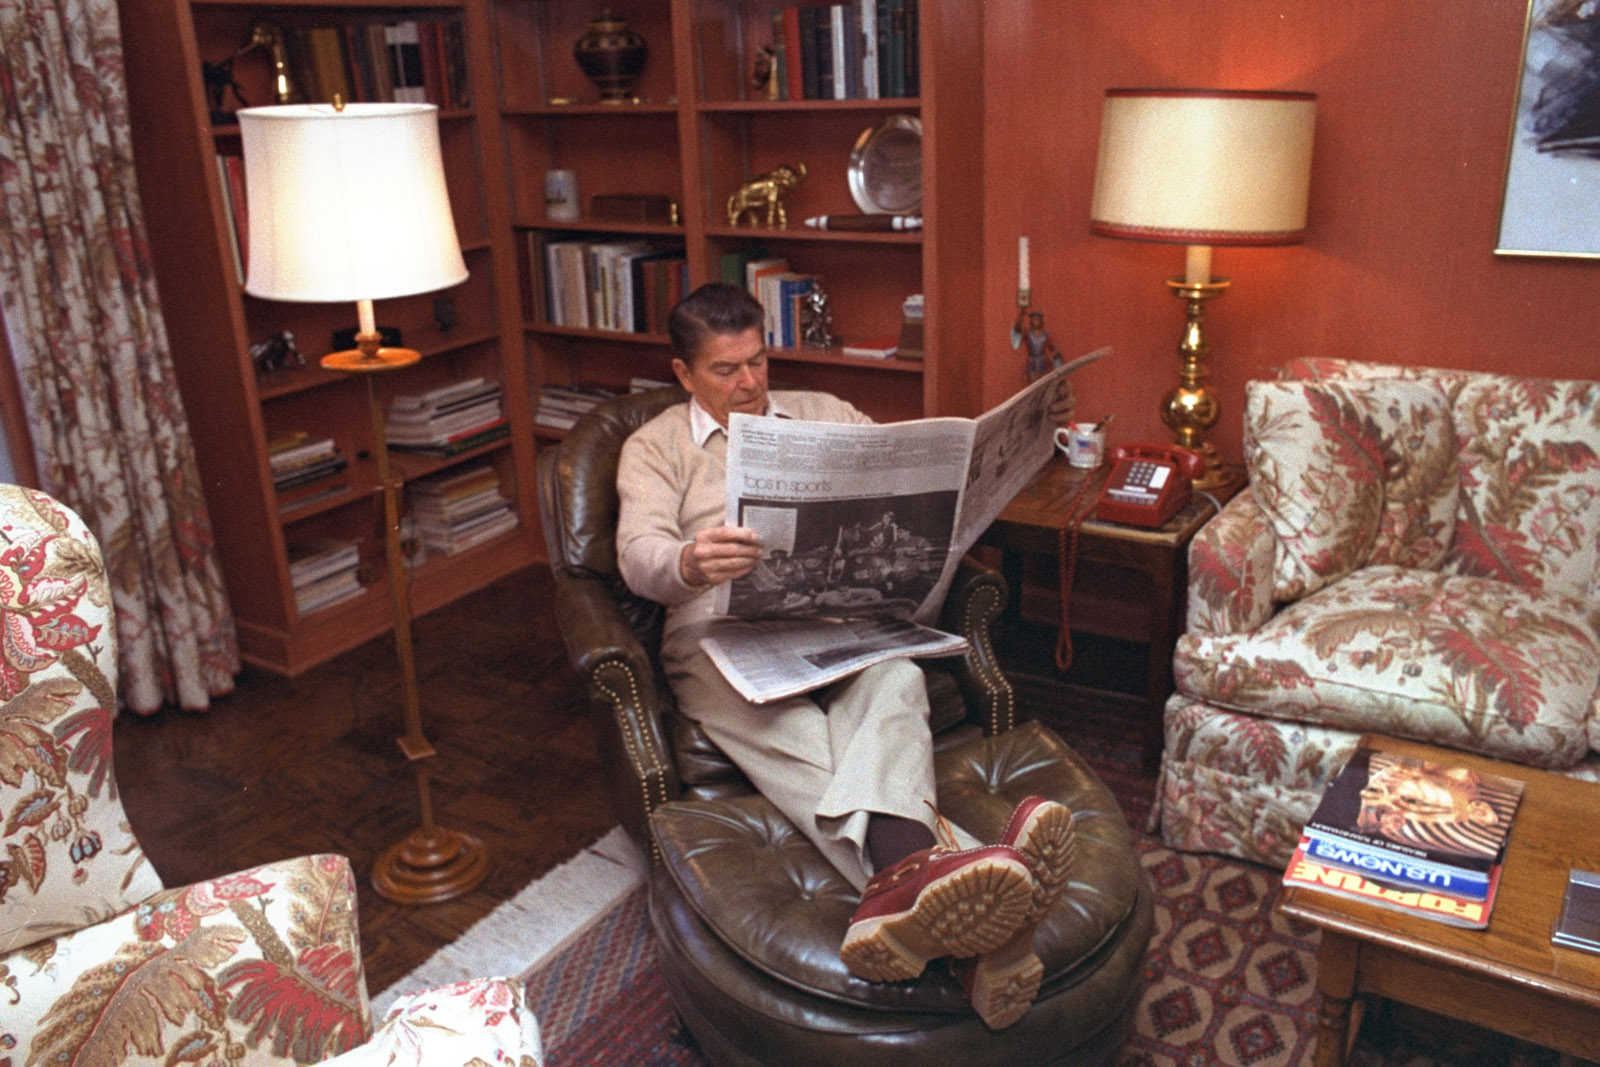 GOP presidential candidate Ronald Reagan is shown relaxing with the morning papers at his Wexford home near Middleburg, Virginia, on October 24, 1980.  (AP Photo/Walt Zeboski)